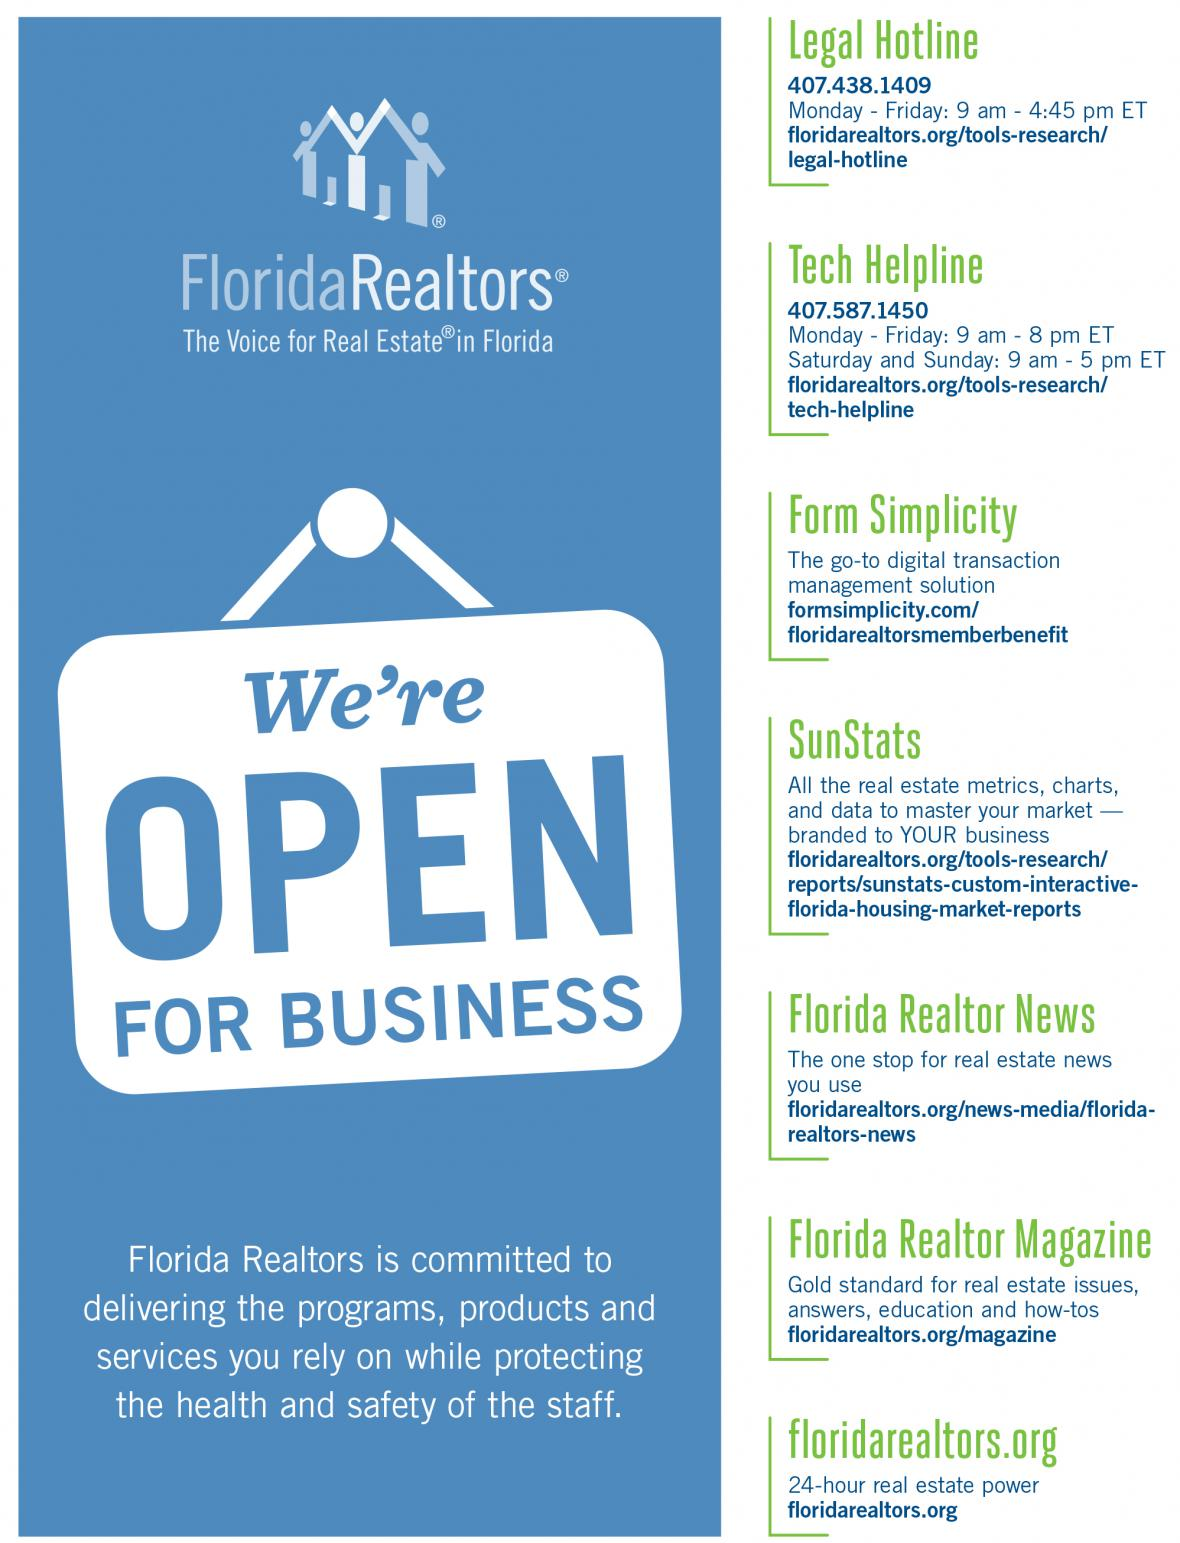 Graphic detailing information about key Florida Realtors programs, products and services